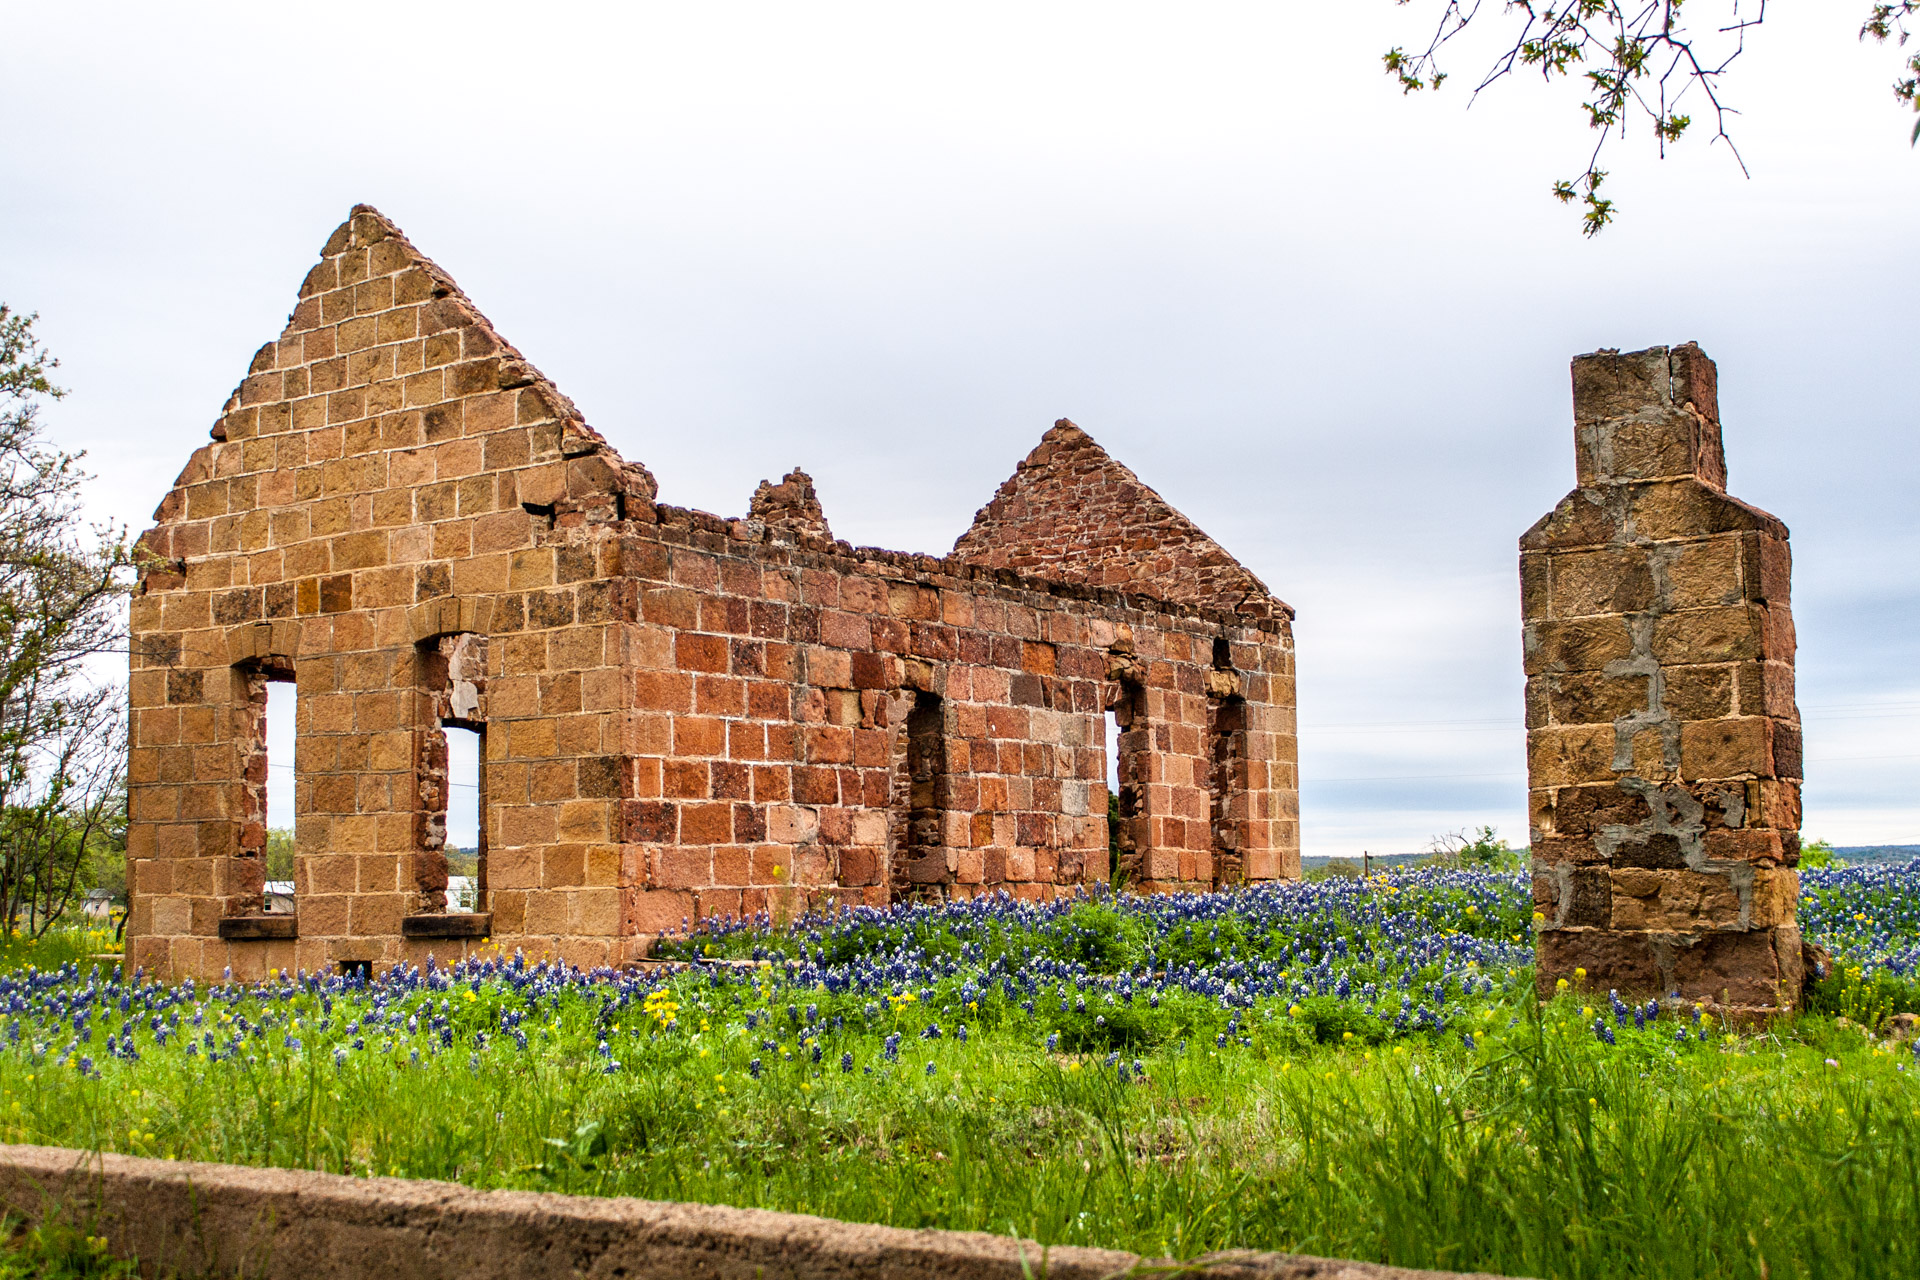 Pontotoc, Texas - A Stone Ruin With Bluebonnets